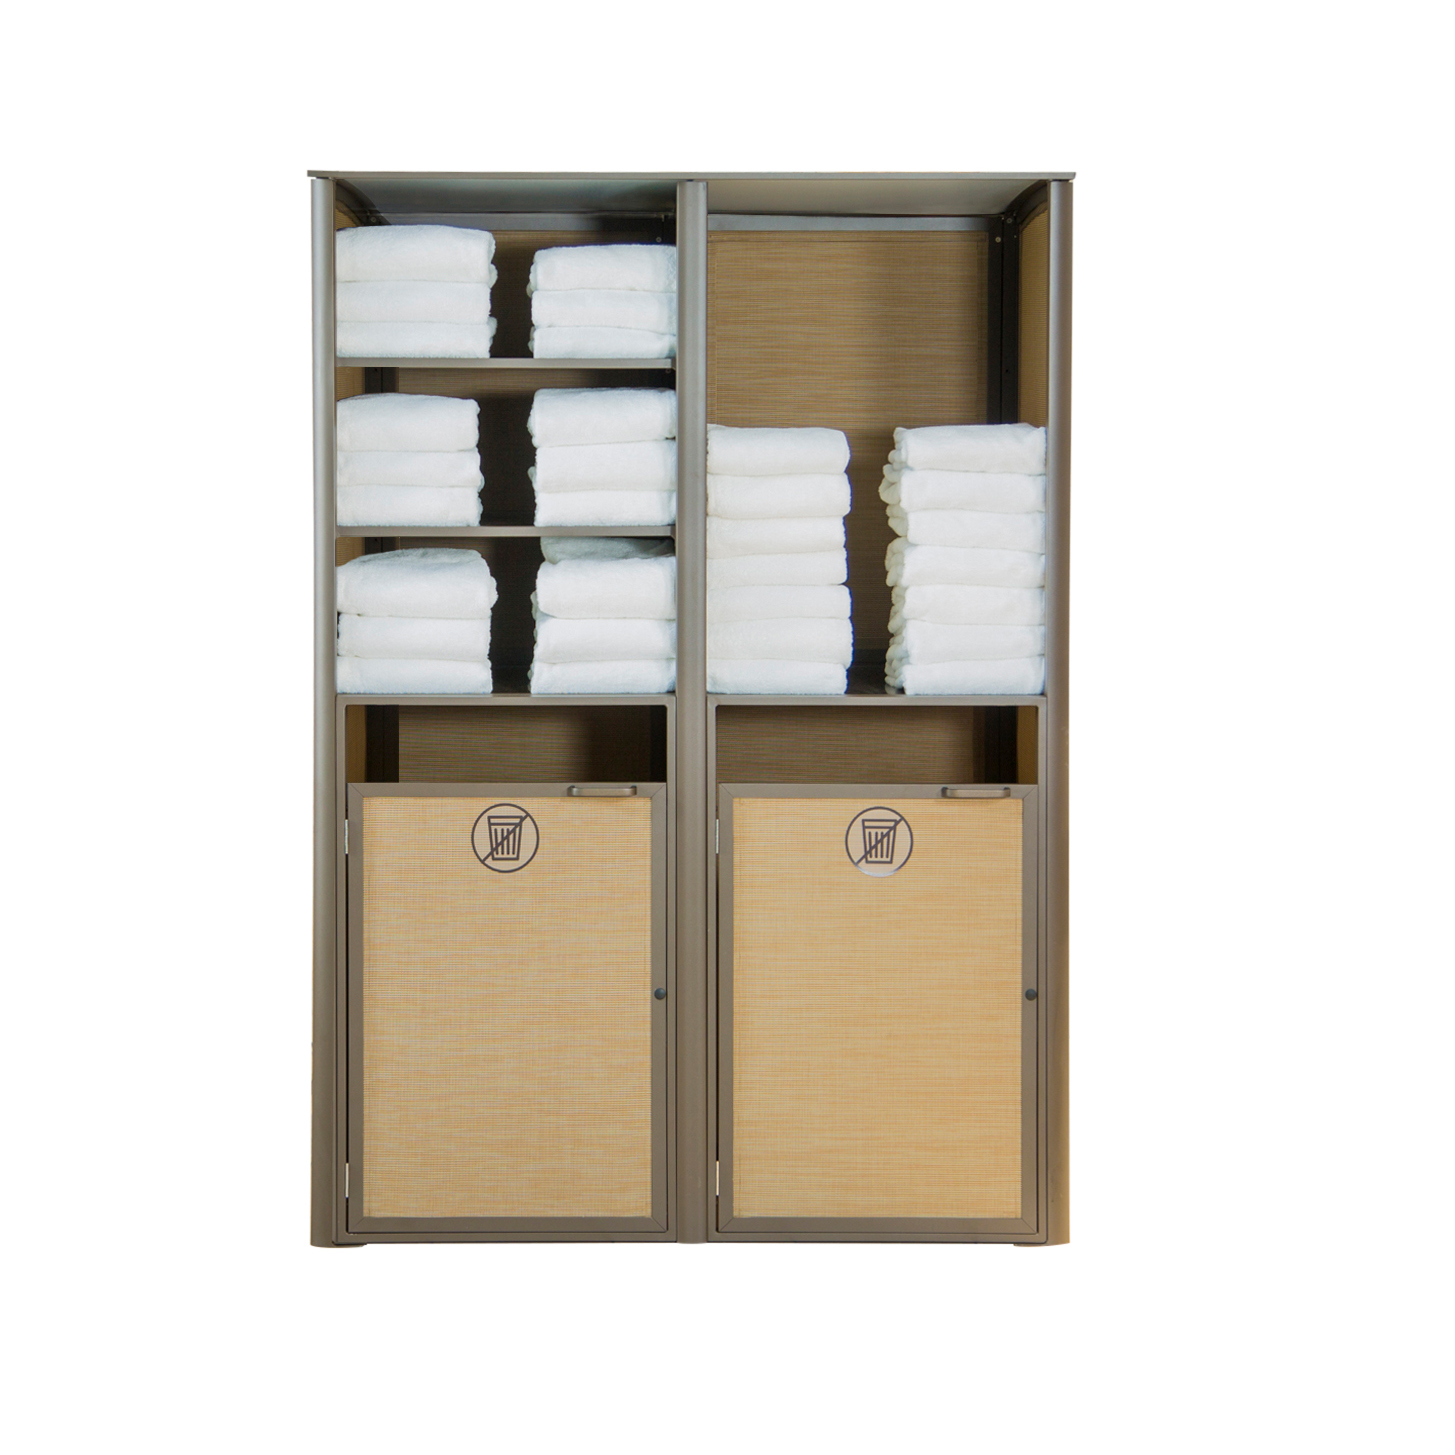 Grosfillex US173599 laundry housekeeping cabinet